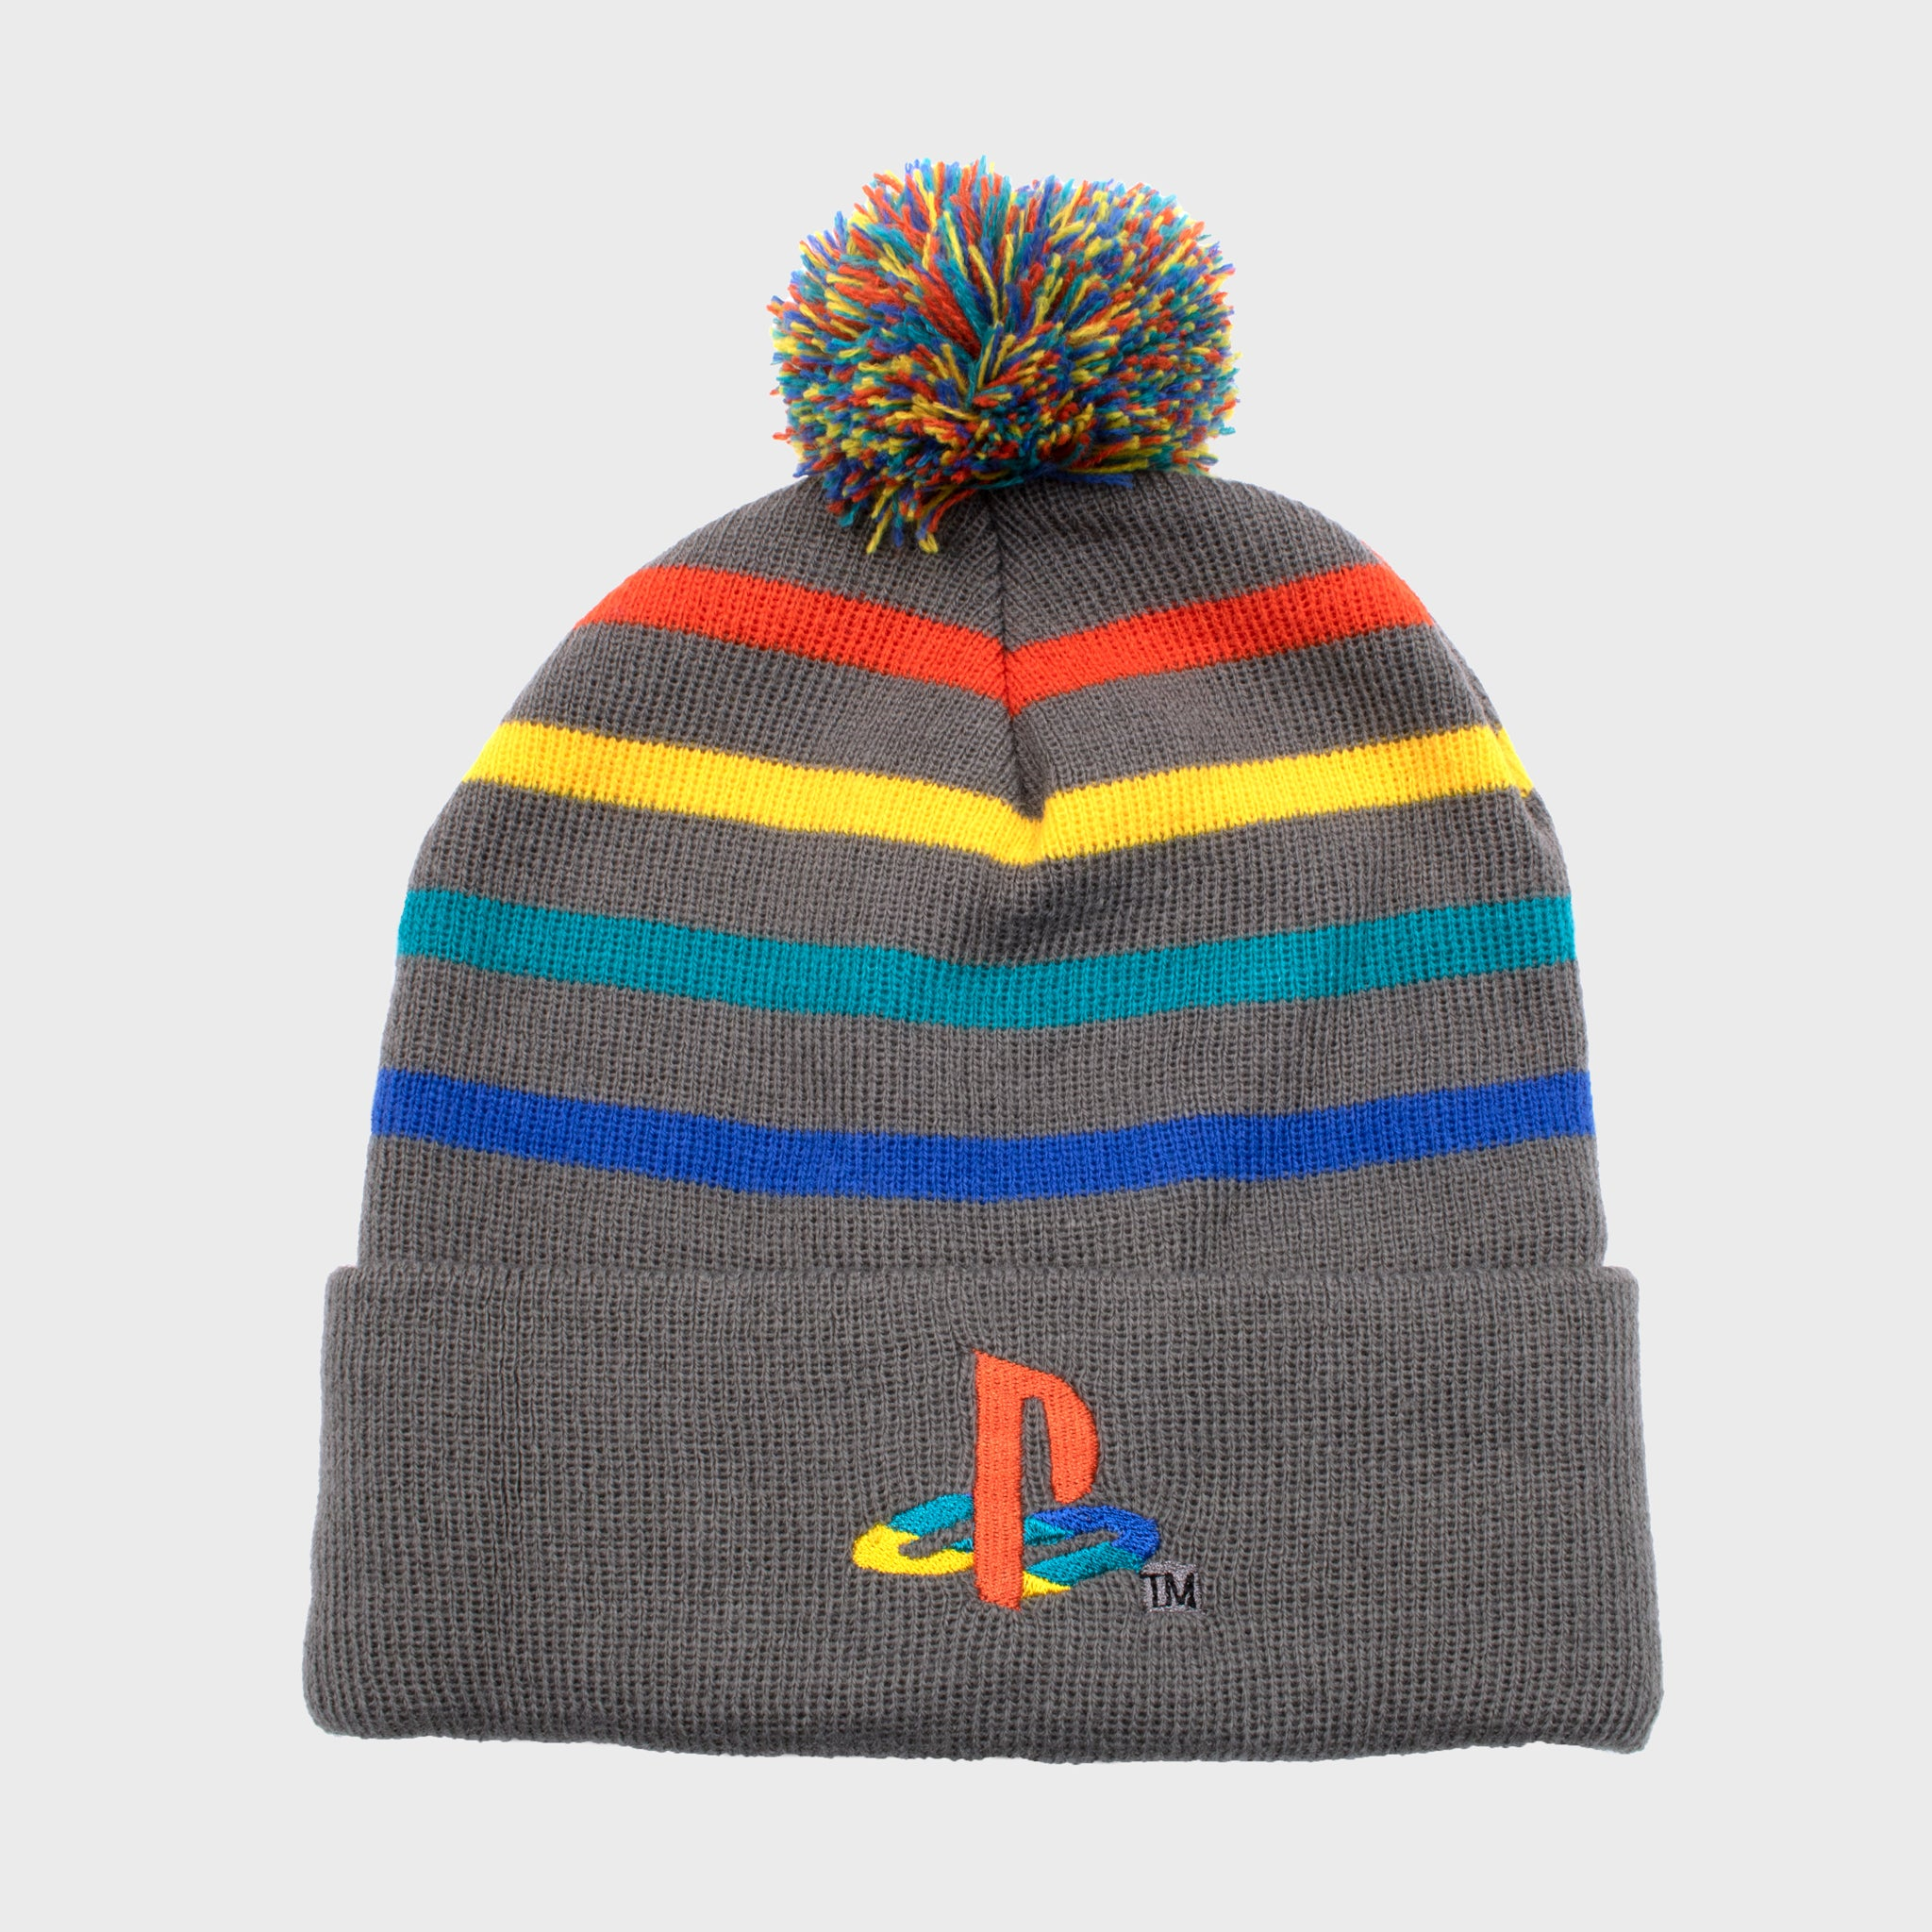 playstation ps4 ps video games console classic old school retro 90s walmart retail box accessories collectibles exclusive culturefly beanie hat headwear